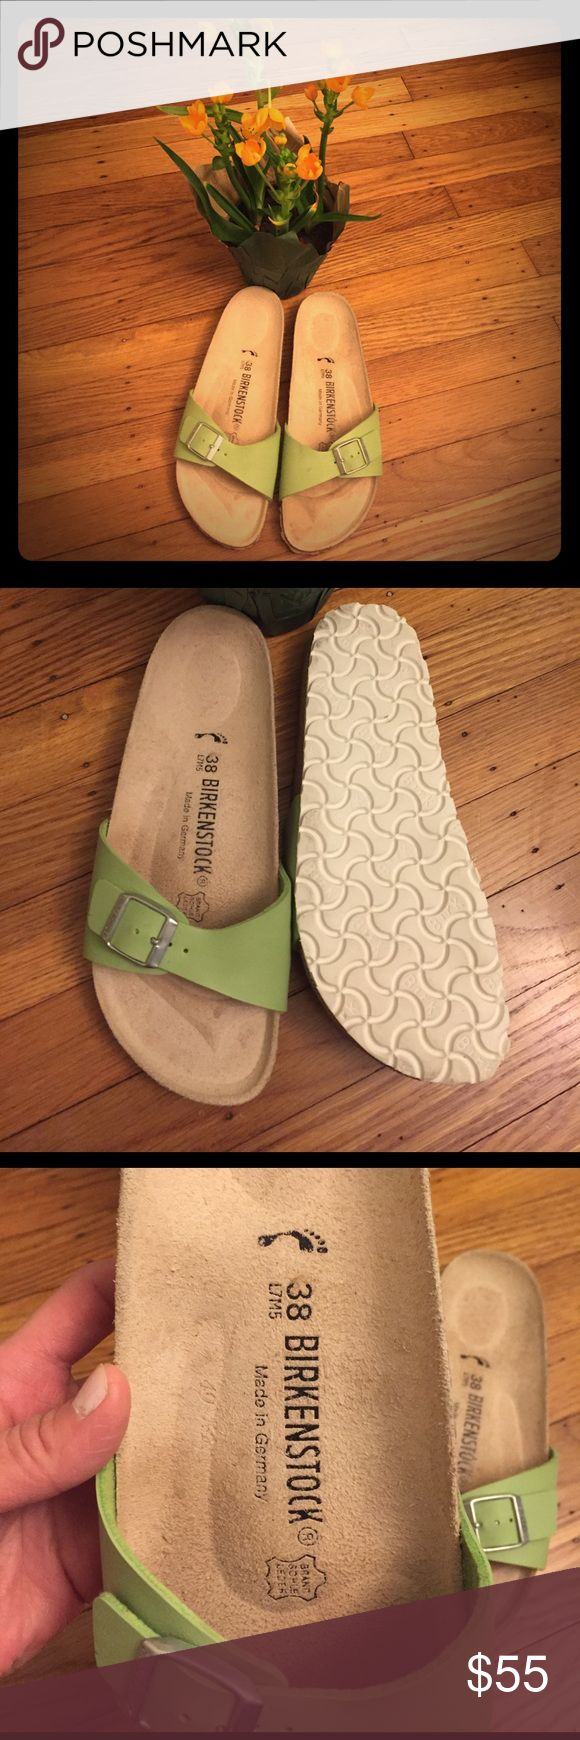 🌺Reduced⬇Germany made Madrid Birkenstock🌺 Awesome condition, barely worn Birkenstock slippers in springy green color!!! Stylish and comfy with famous Birko-Floor and rubber sole. Have 2 tiny marks on leather and one one sole as seen in 5th photo, otherwise perfectly clean!!! Open to reasonable offers!✅✅✅ Birkenstock Shoes Slippers